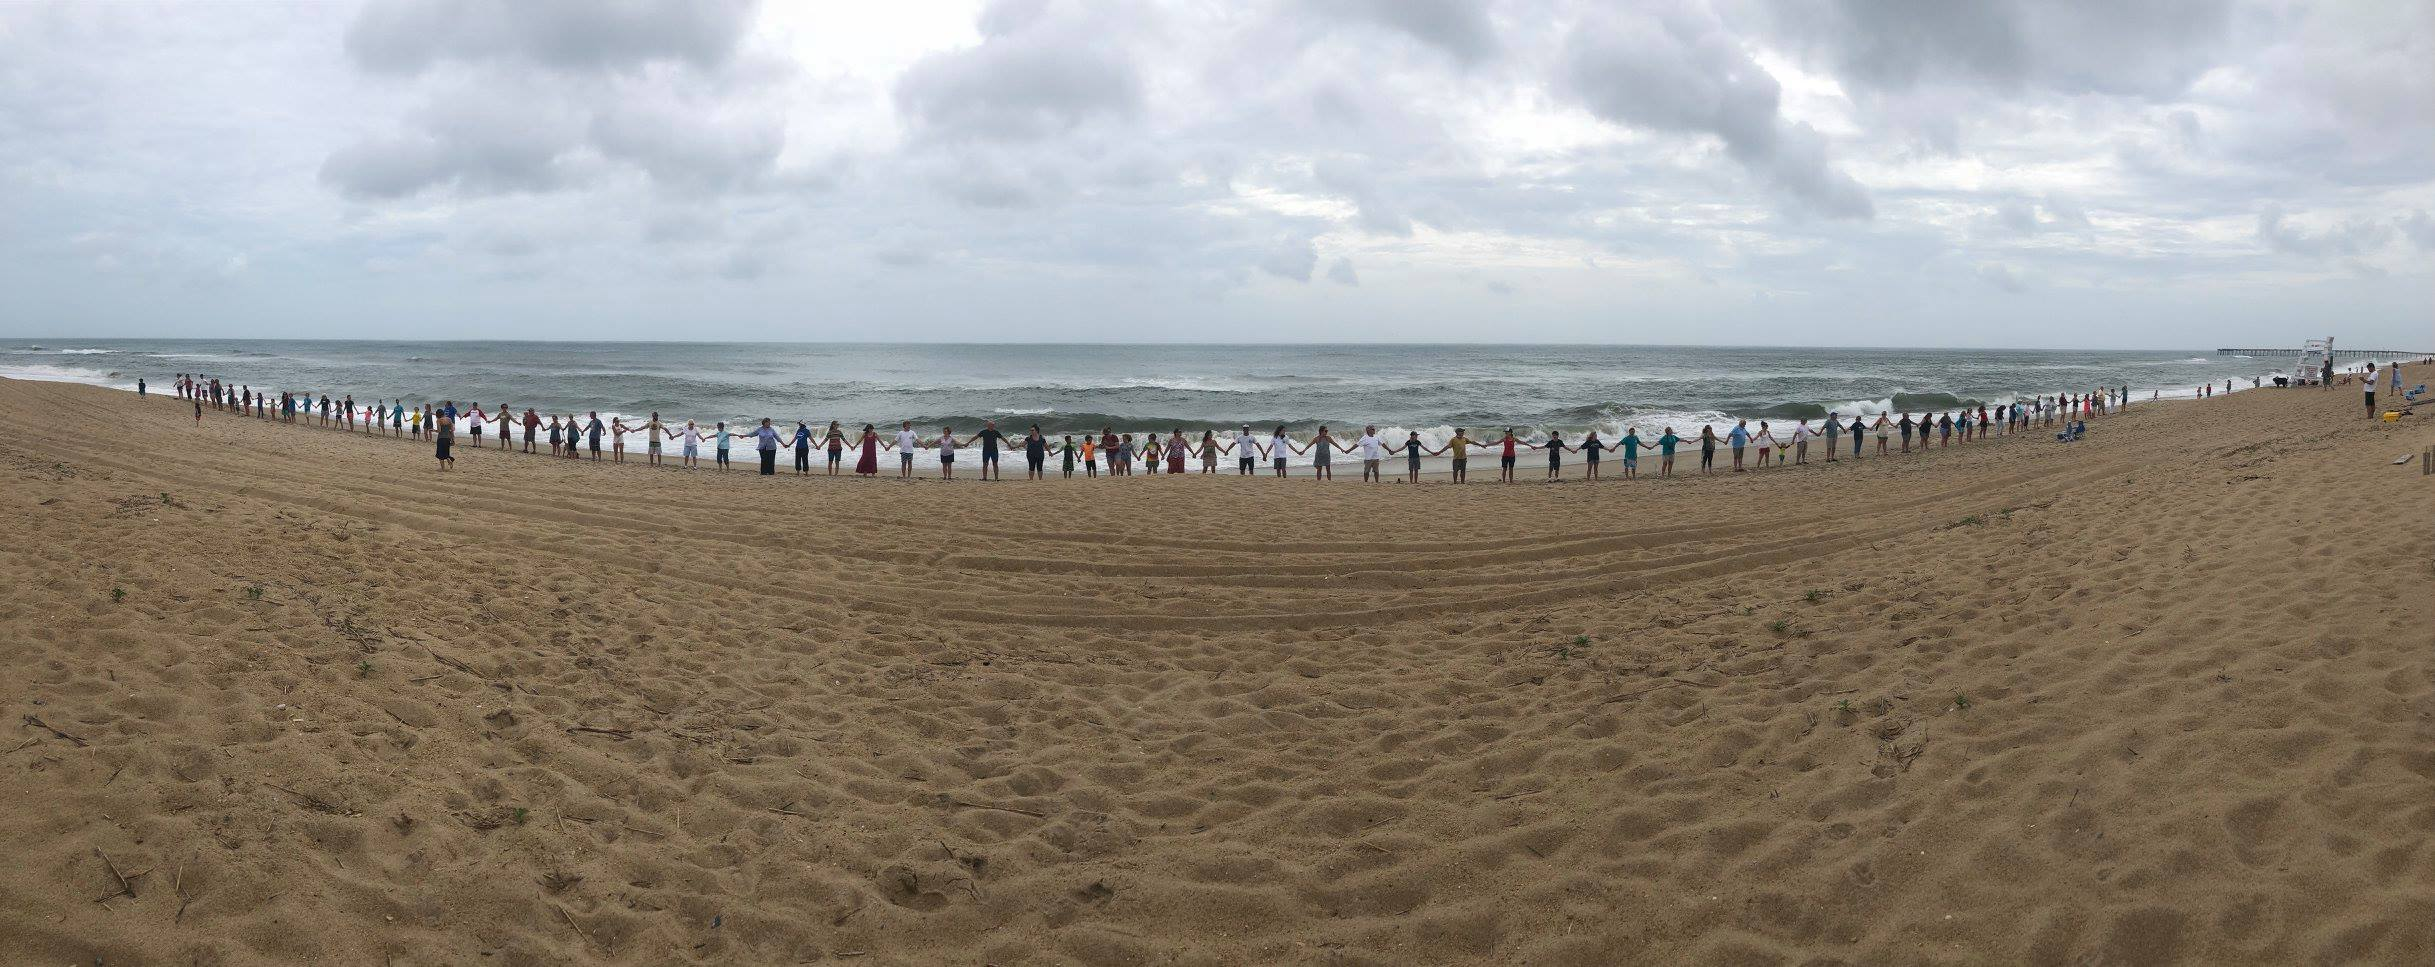 Hands across the sand 1.jpg